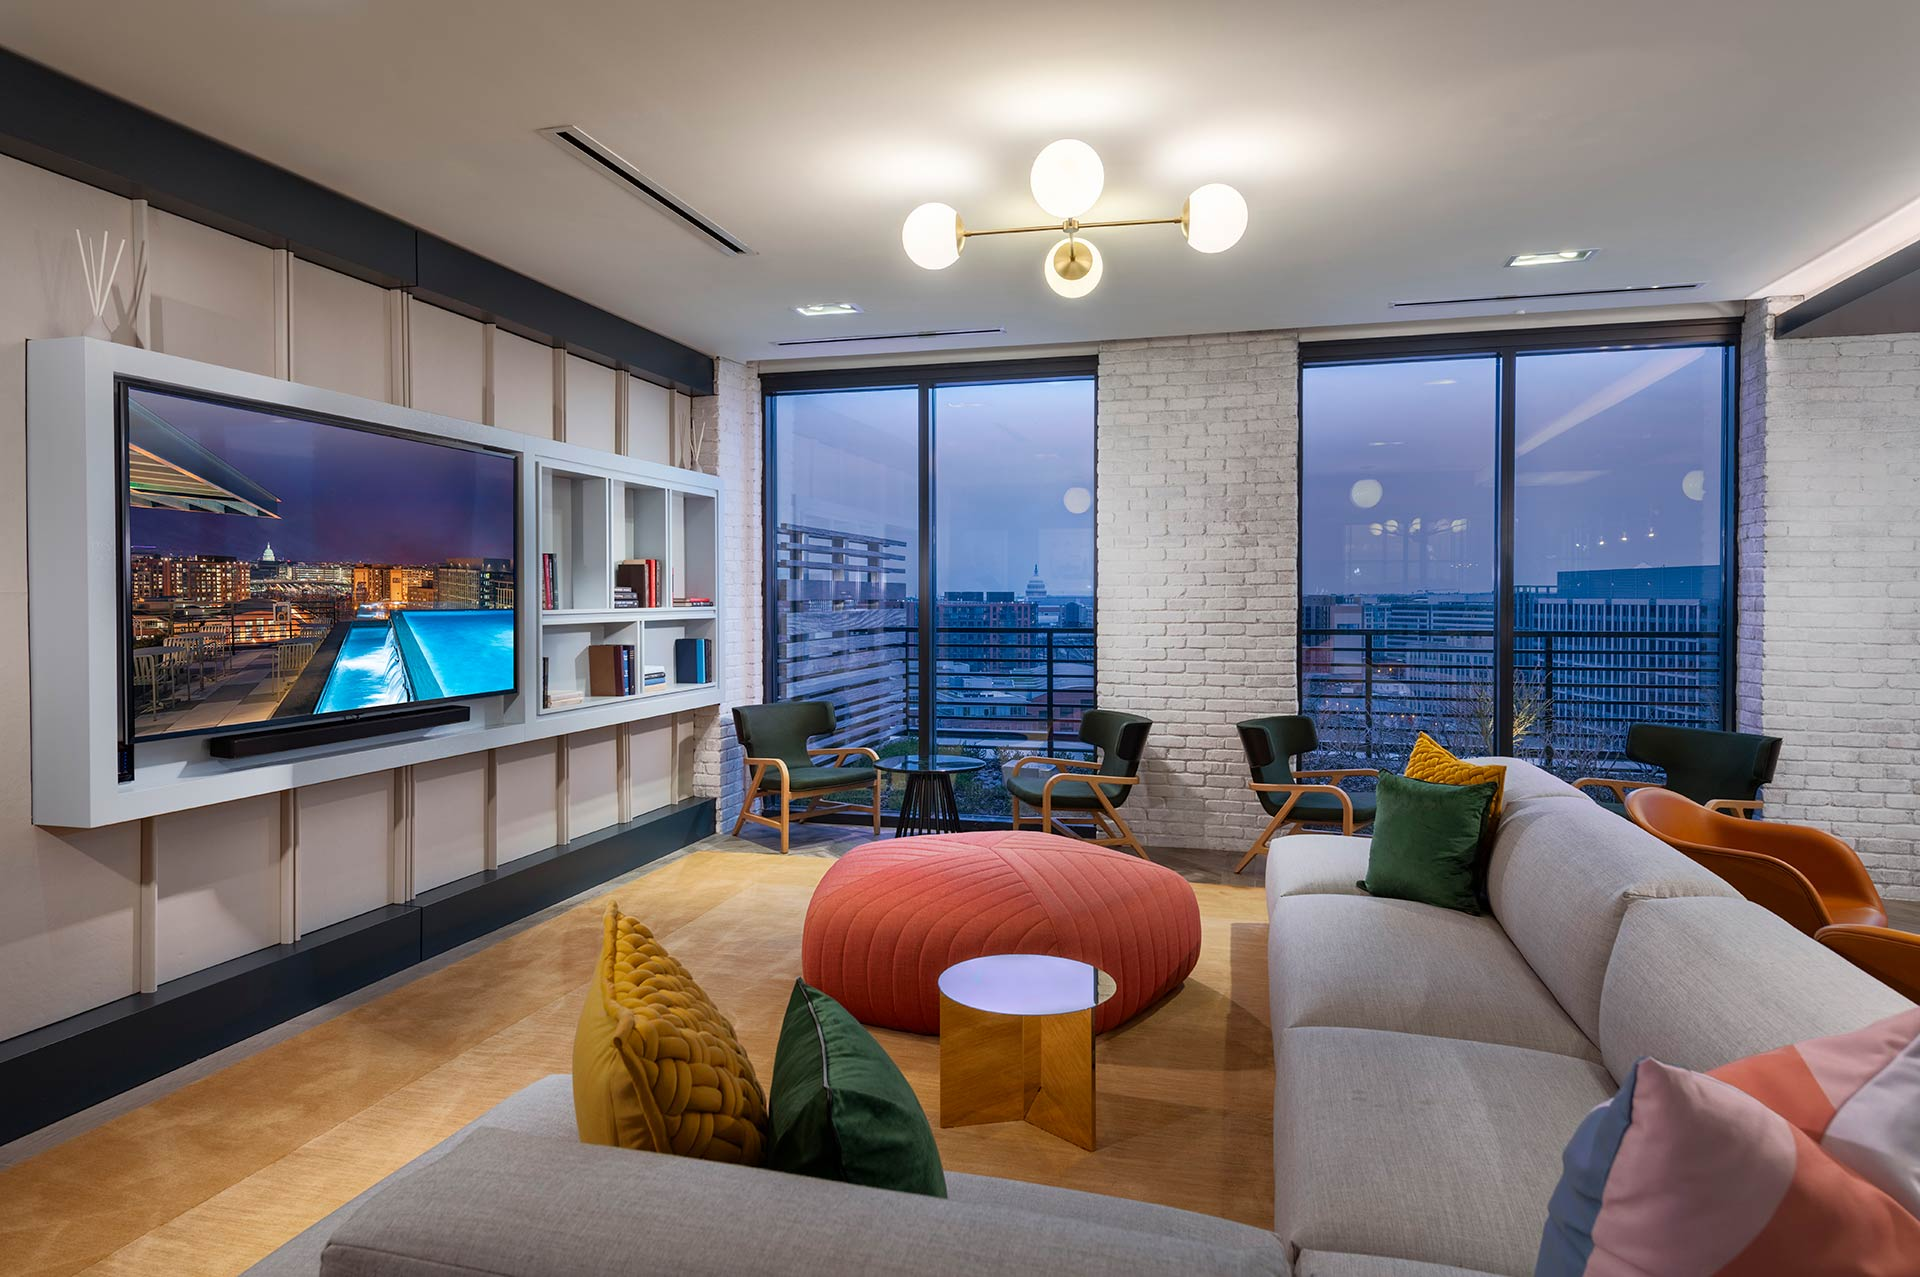 penthouselounge area with large television